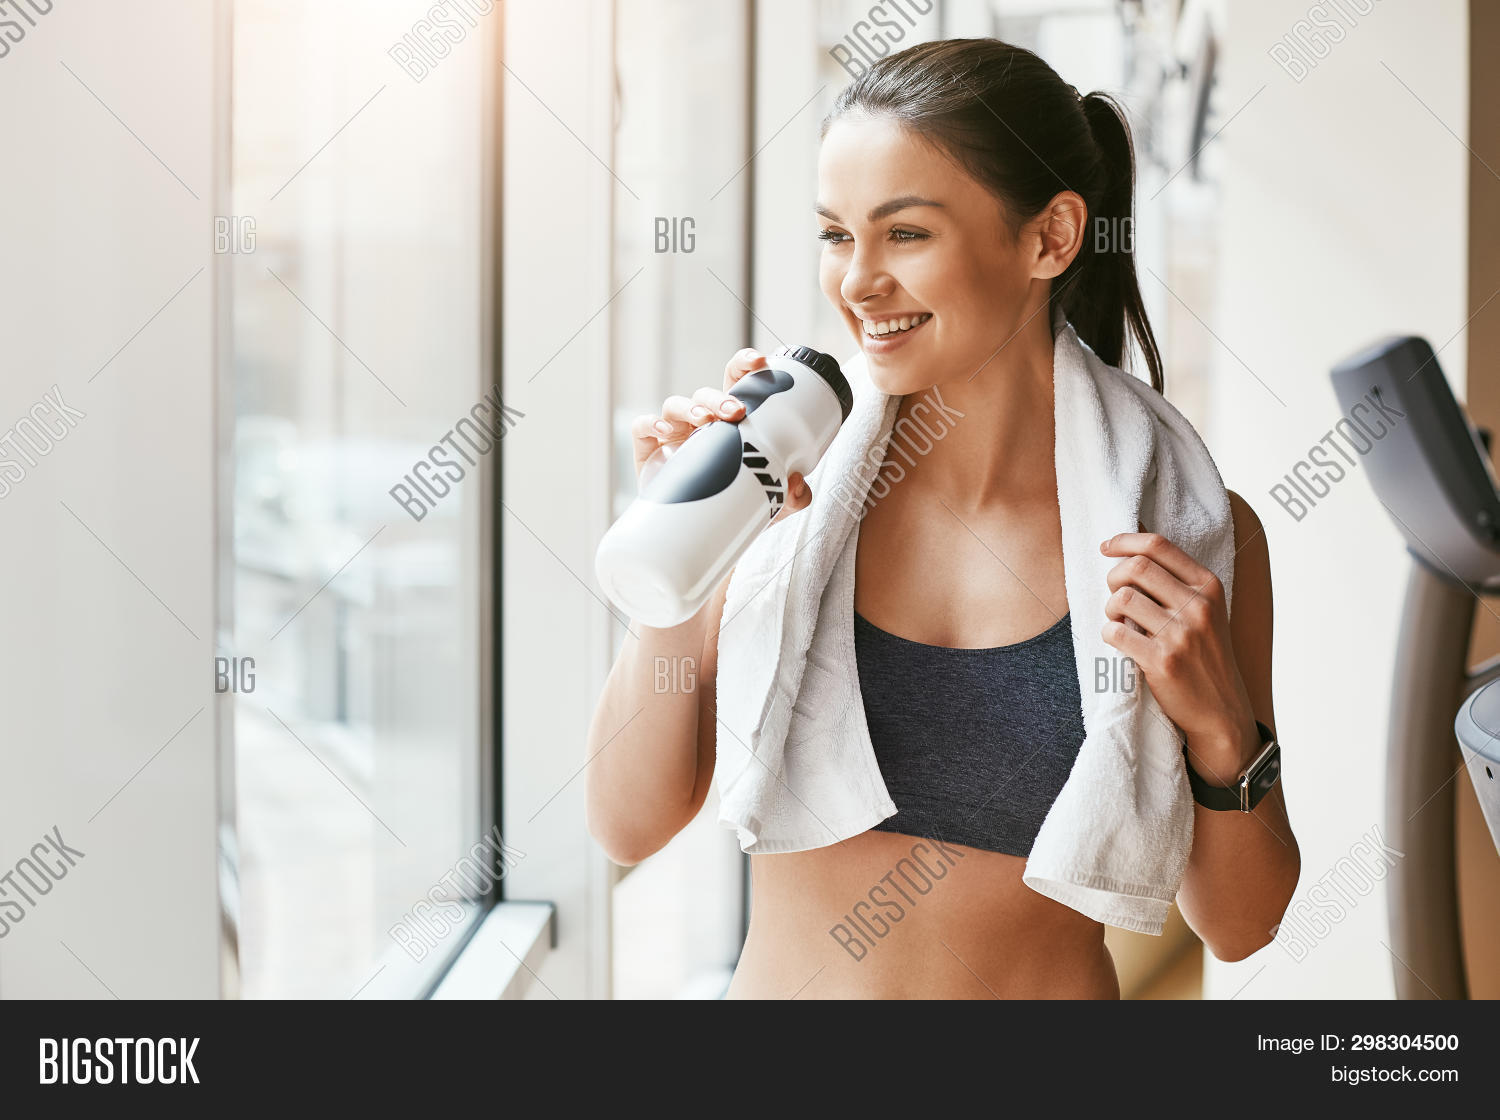 Time For Rest. Young And Cheerful Woman In Sportswear With White Towel On Her Shoulders Drinking Wat